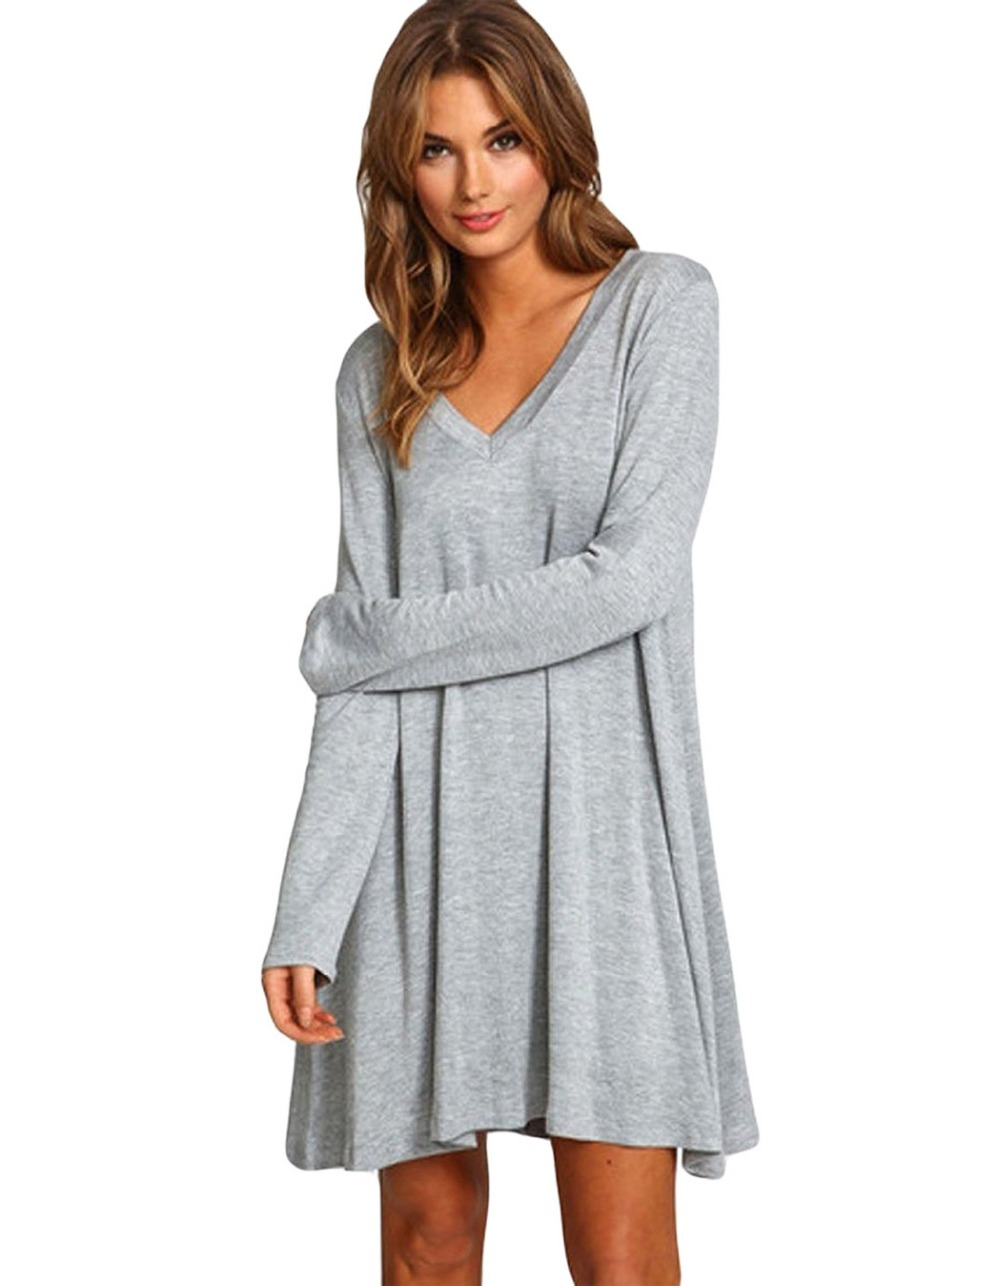 Buy Plus size women winter dresses 2015 long sleeve dress new arrival sexy  jersey cotton Swing Dresses autumn casual t shirt dress in Cheap Price on  ... 5bf11c4f9